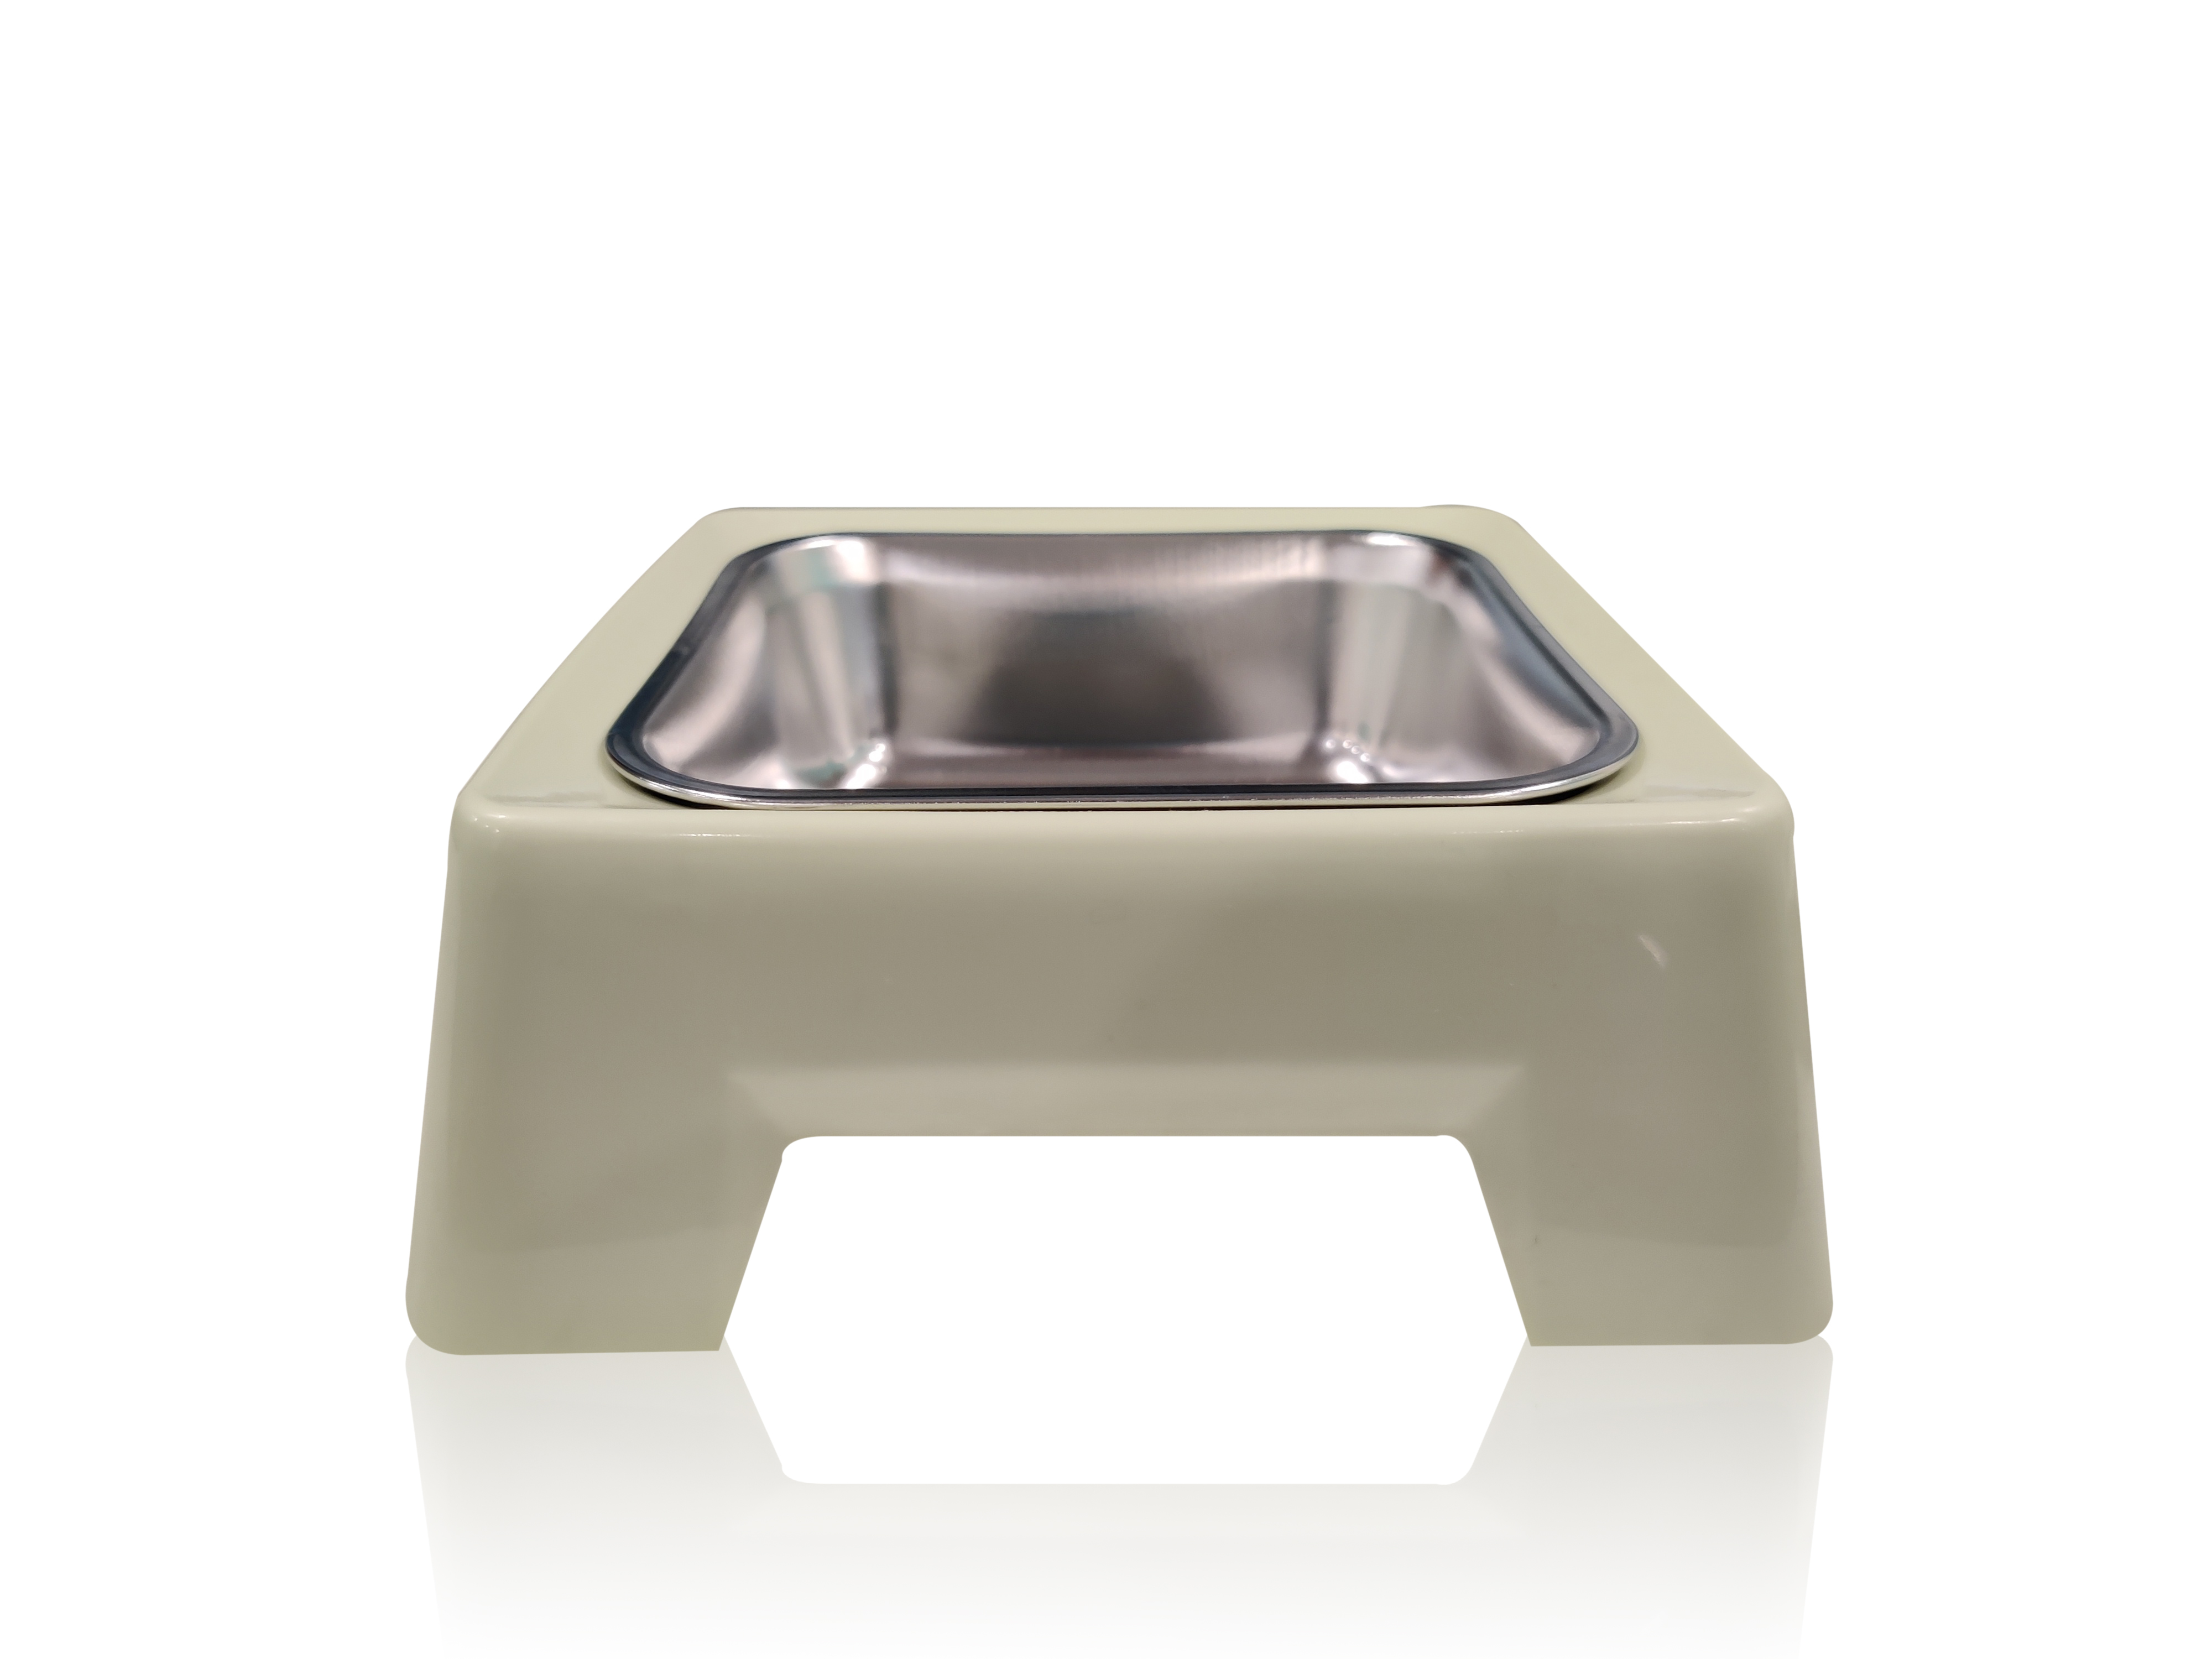 Pets Empire Square Stainless-Steel Pet Bowl Food Water Feeder Puppy Drinking Dish Cat Dog Feeding Food Bowls Pets Food Container Dog Accessories (GREEN)